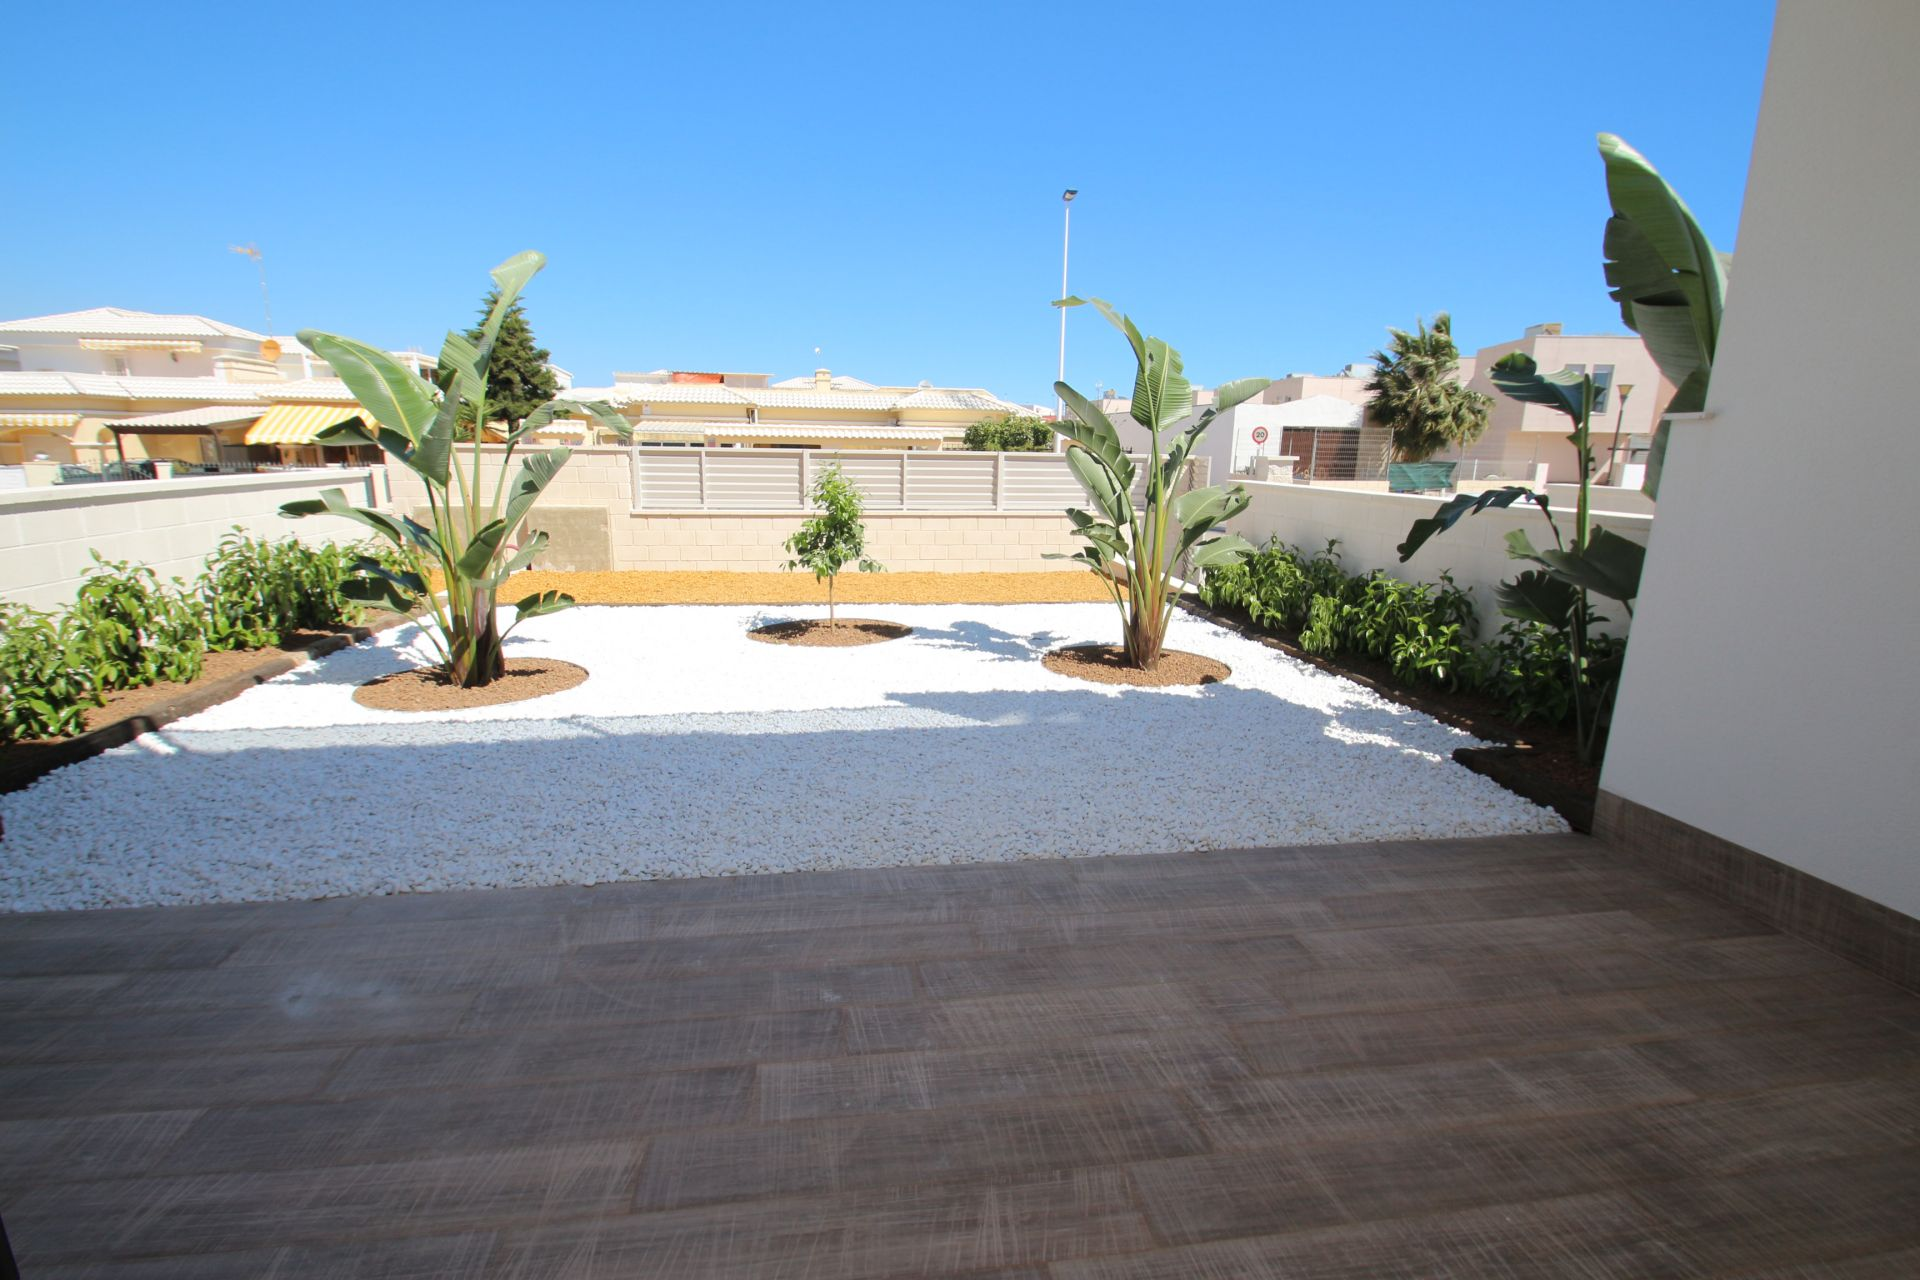 3 bedroom modern bungalows with garden or solarium in Torrevieja 9